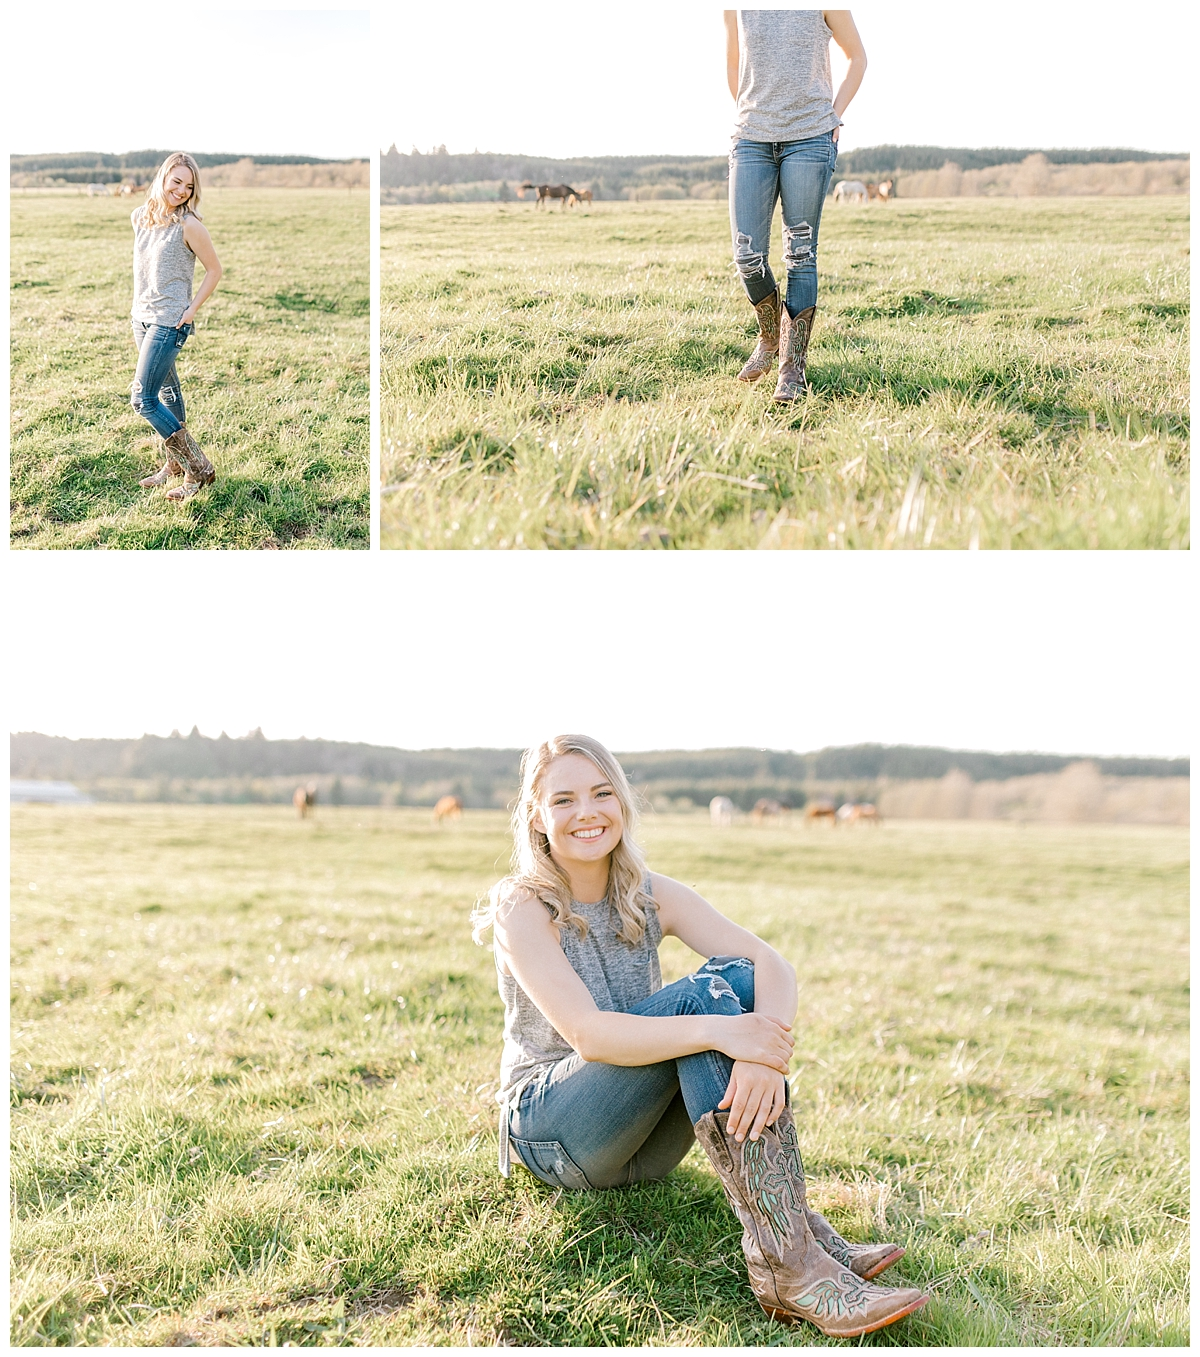 Sunset Senior Session with Horse | Senior Session Inspiration Session | Horse Photo Session | Pacific Northwest Light and Airy Wedding and Portrait Photographer | Emma Rose Company | Kindred Presets Senior Posing.jpg